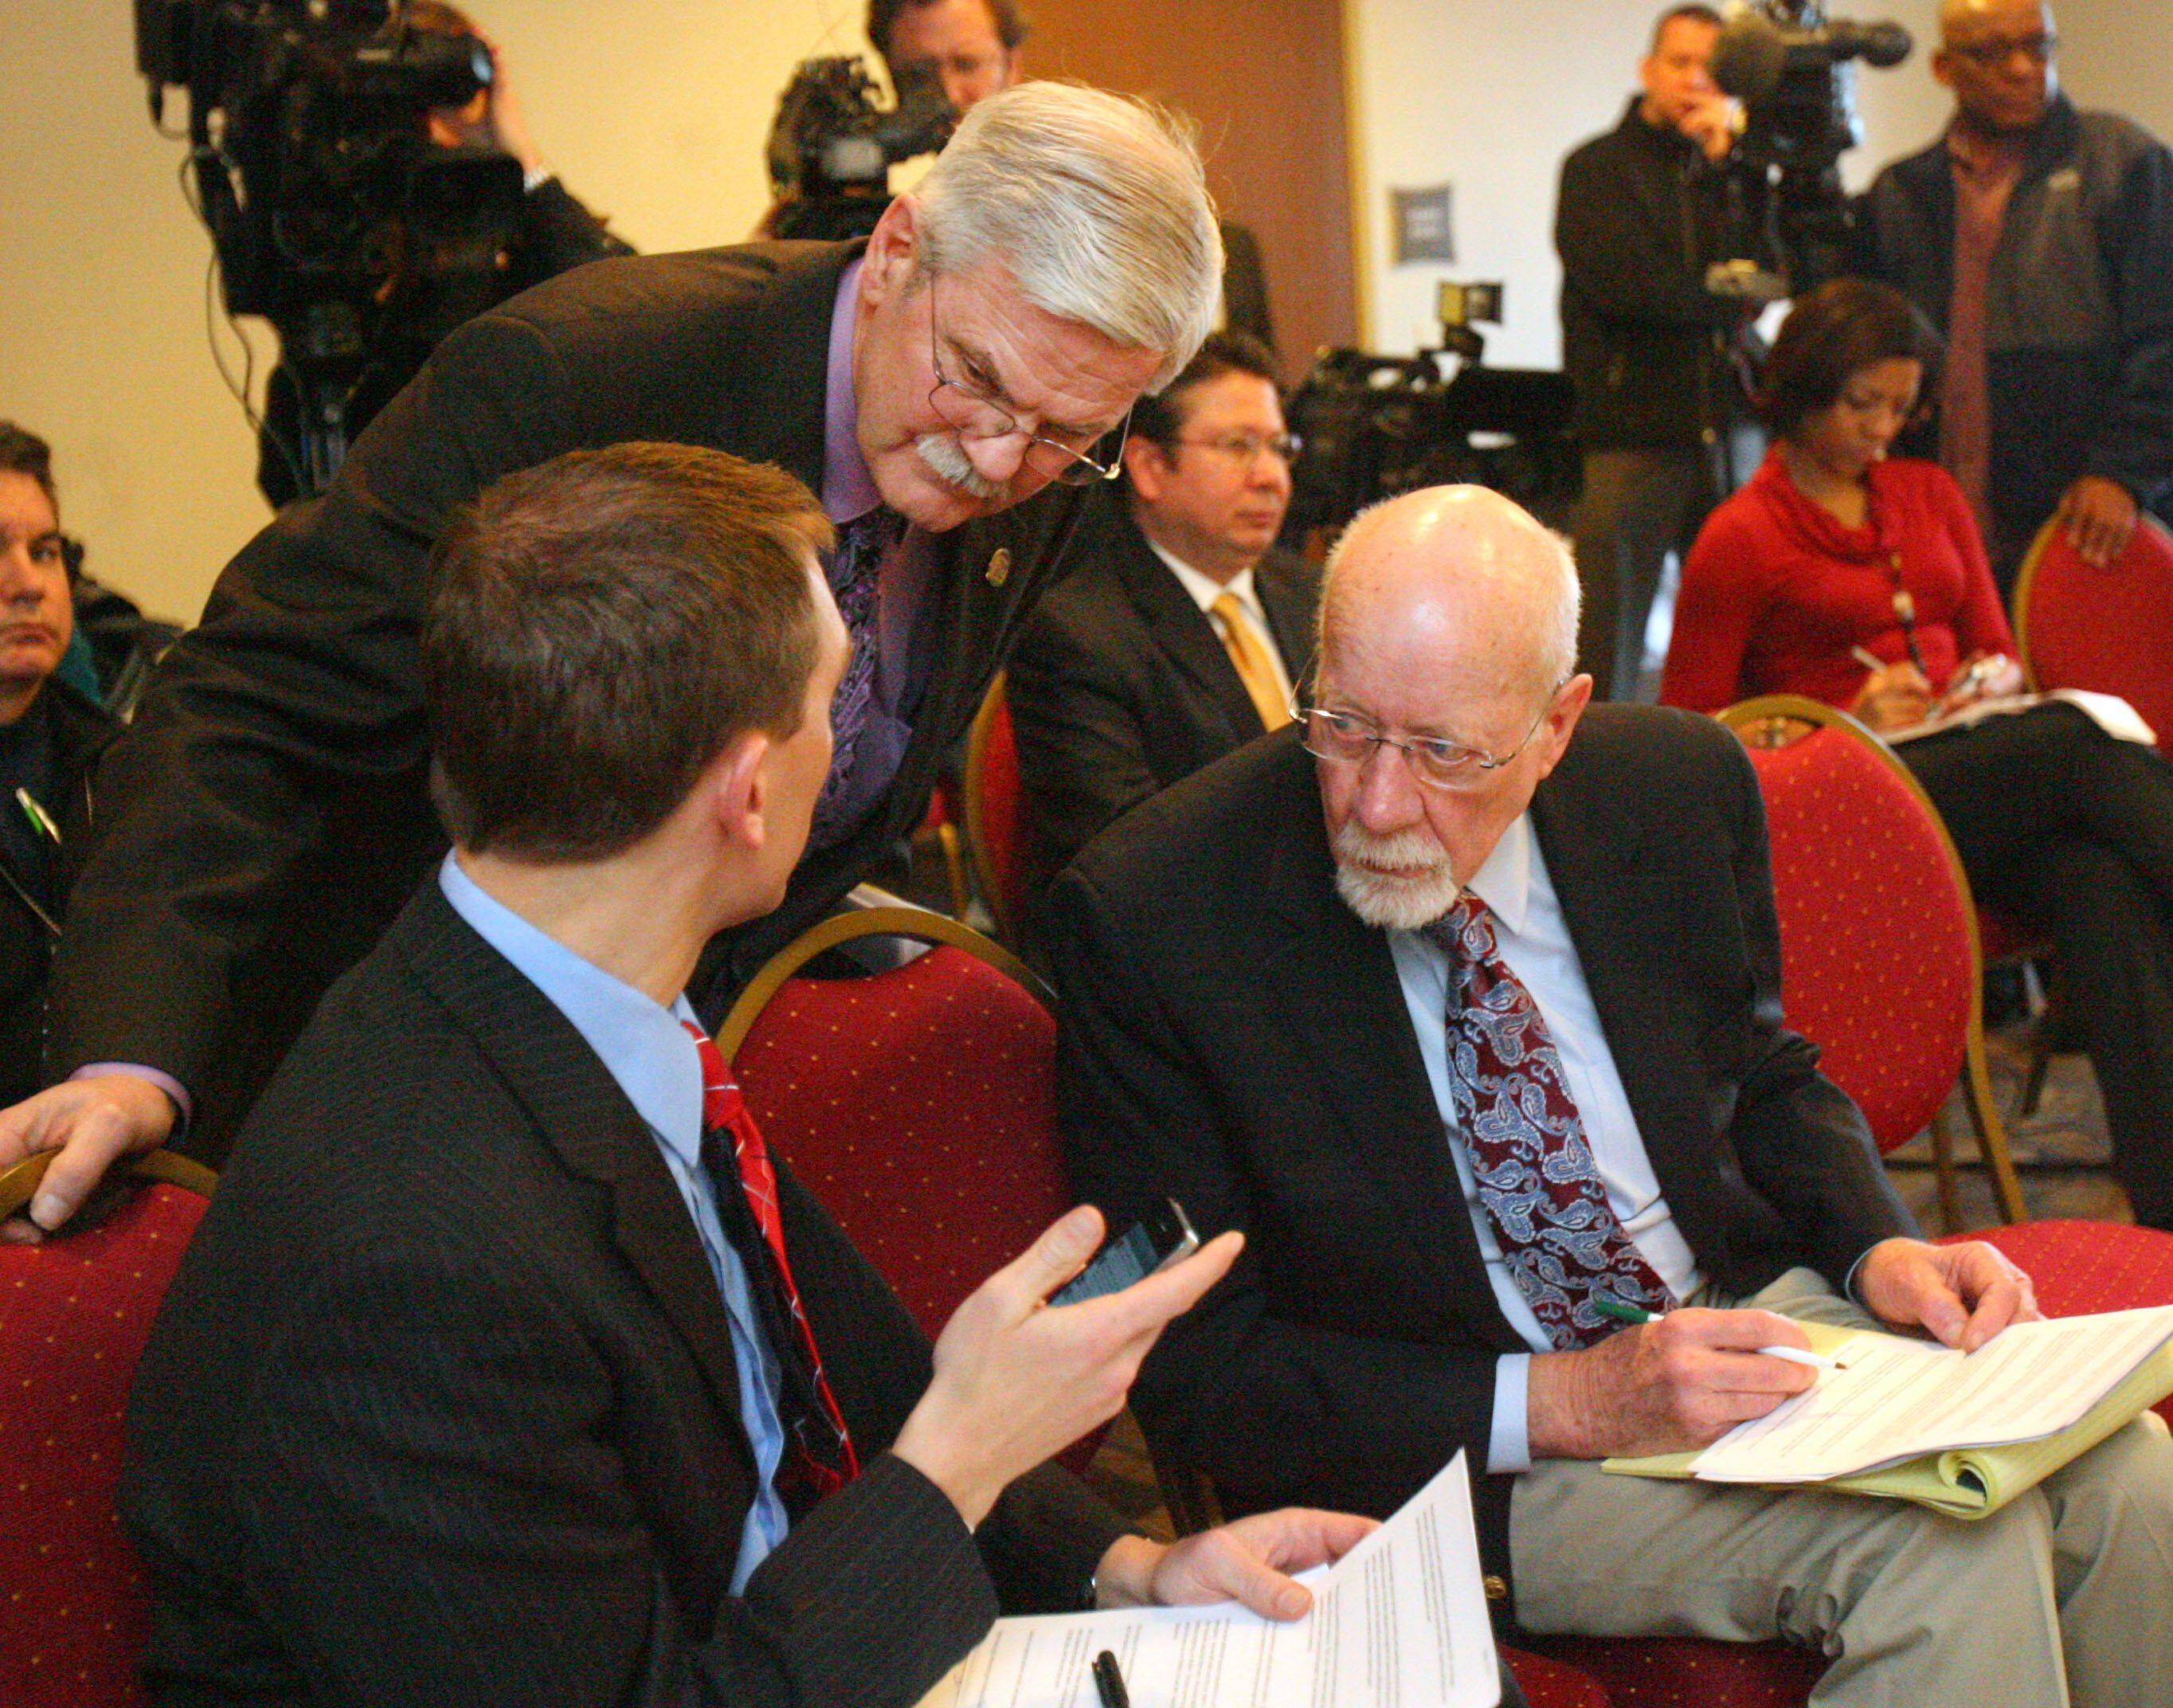 Wisconsin state senators, Chris Larson, left, Mark Miller and Fred Risser chat during Gov. Scott Walker's speech. Five runaway Wisconsin senators watched their governor Tuesday Comfort Suites in Grayslake.